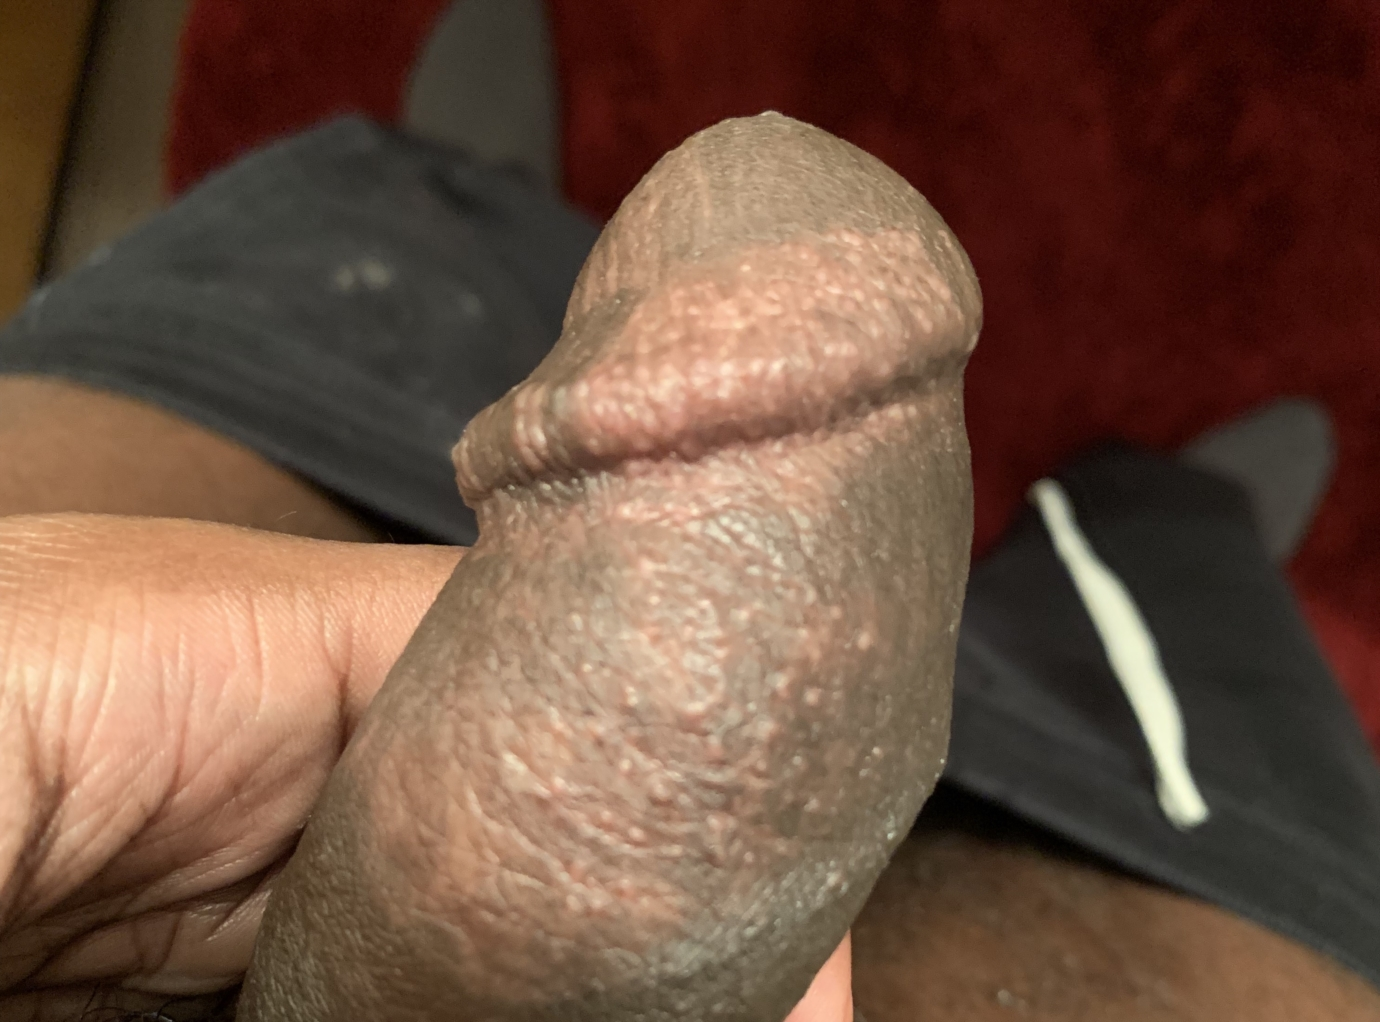 Puss bumps on penis